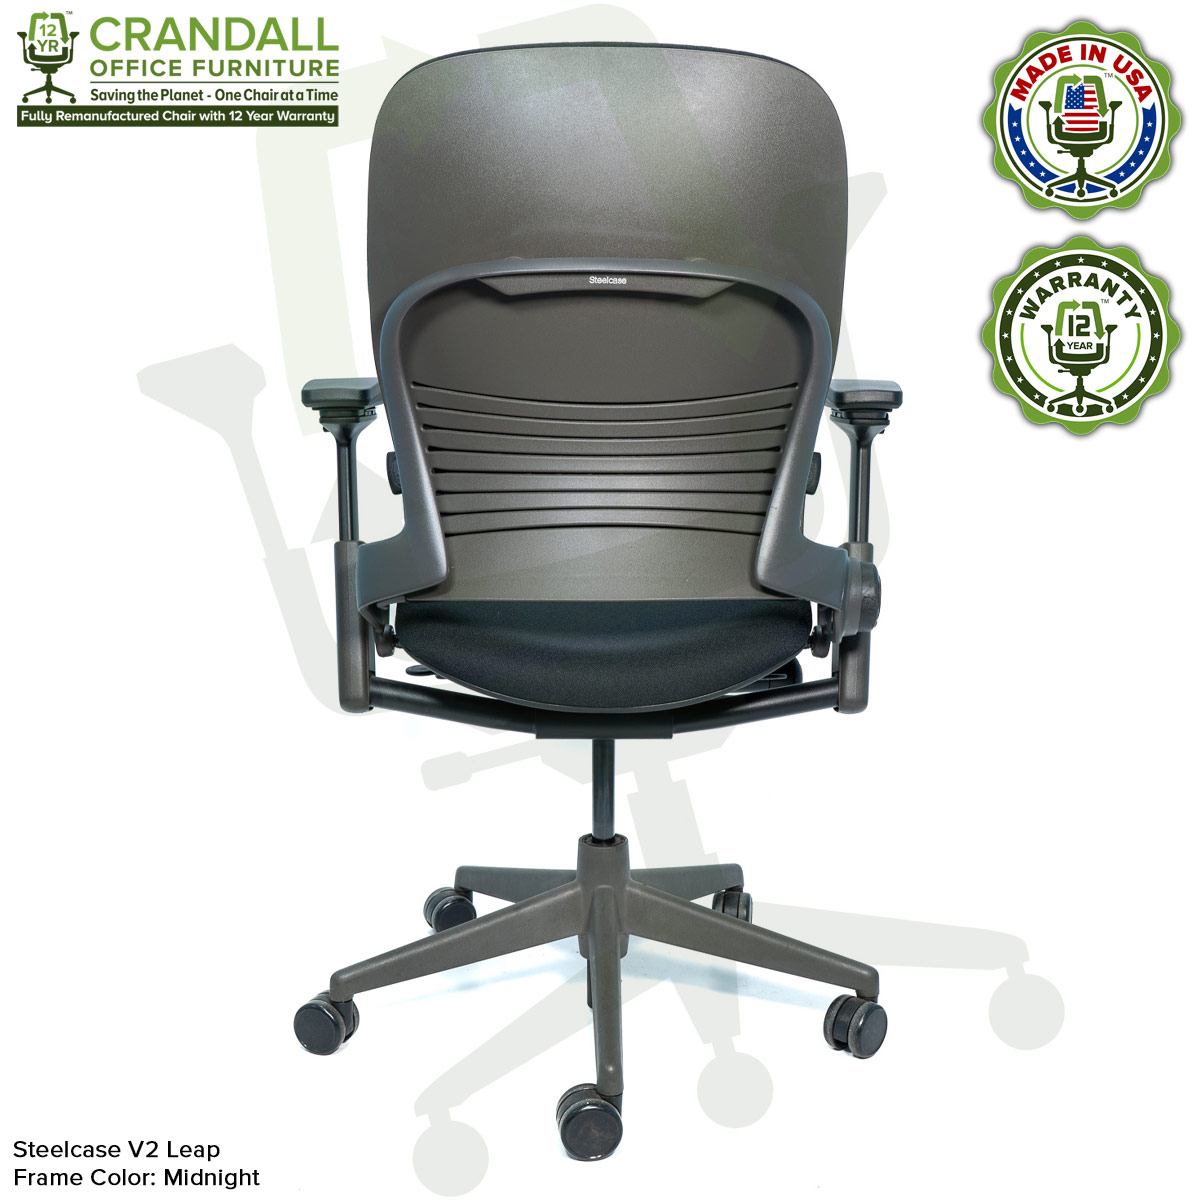 Crandall Office Furniture Remanufactured Steelcase V2 Leap Chair - Midnight Frame 06